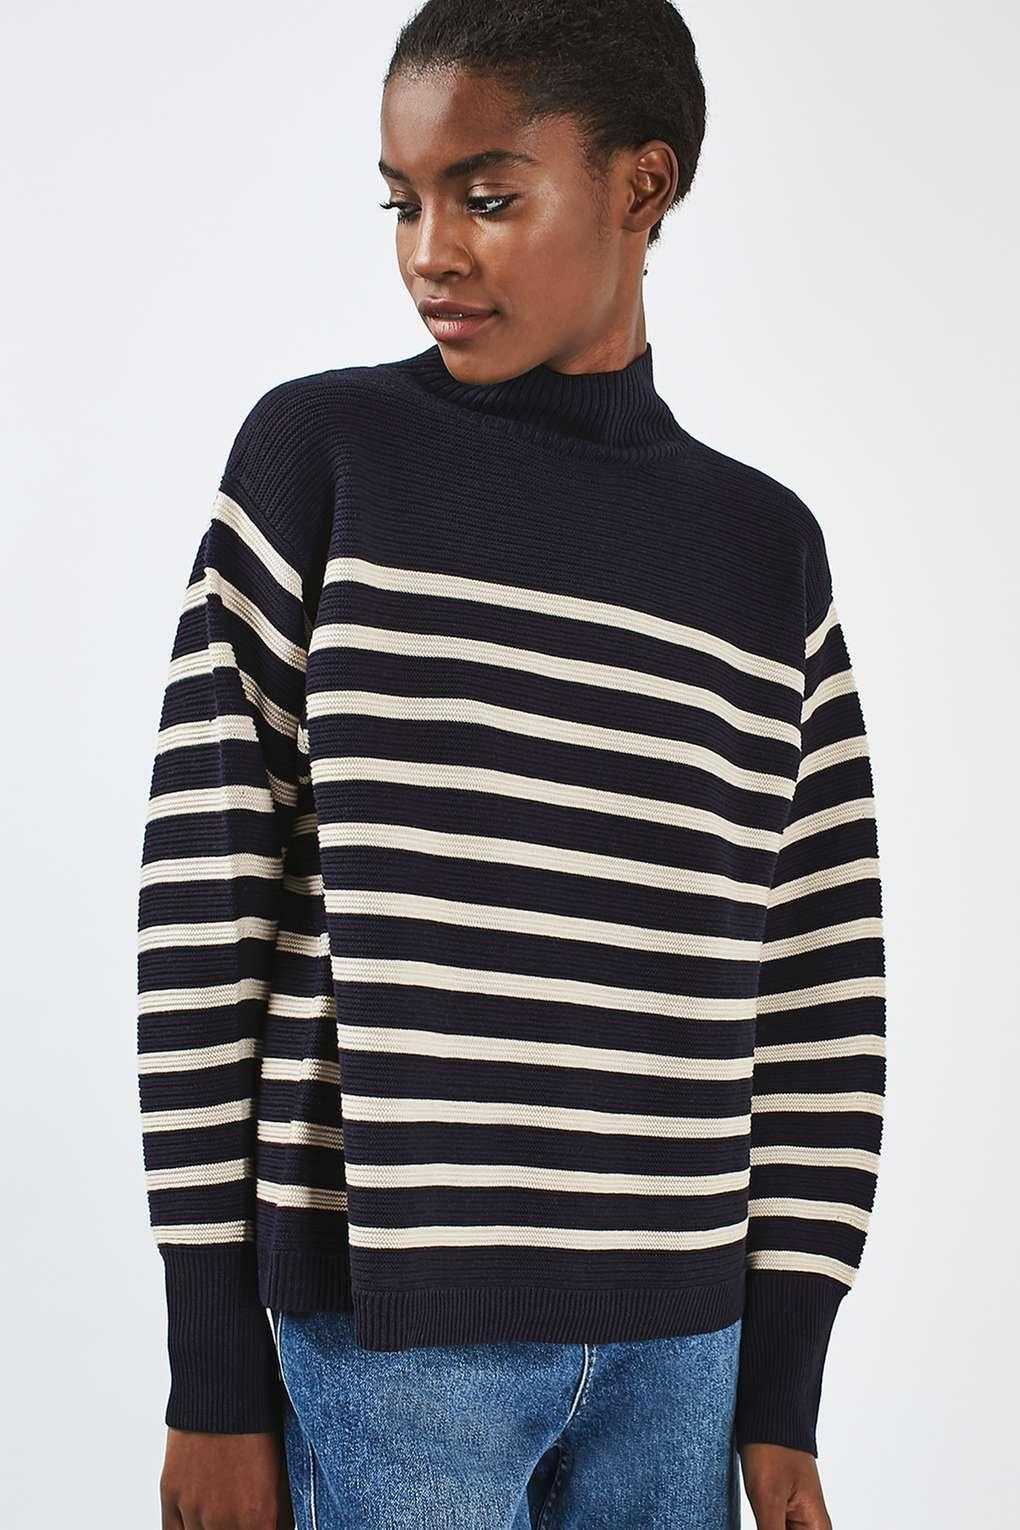 TOPSHOP Synthetic Stripe Cocoon Jumper in Navy Blue (Blue)